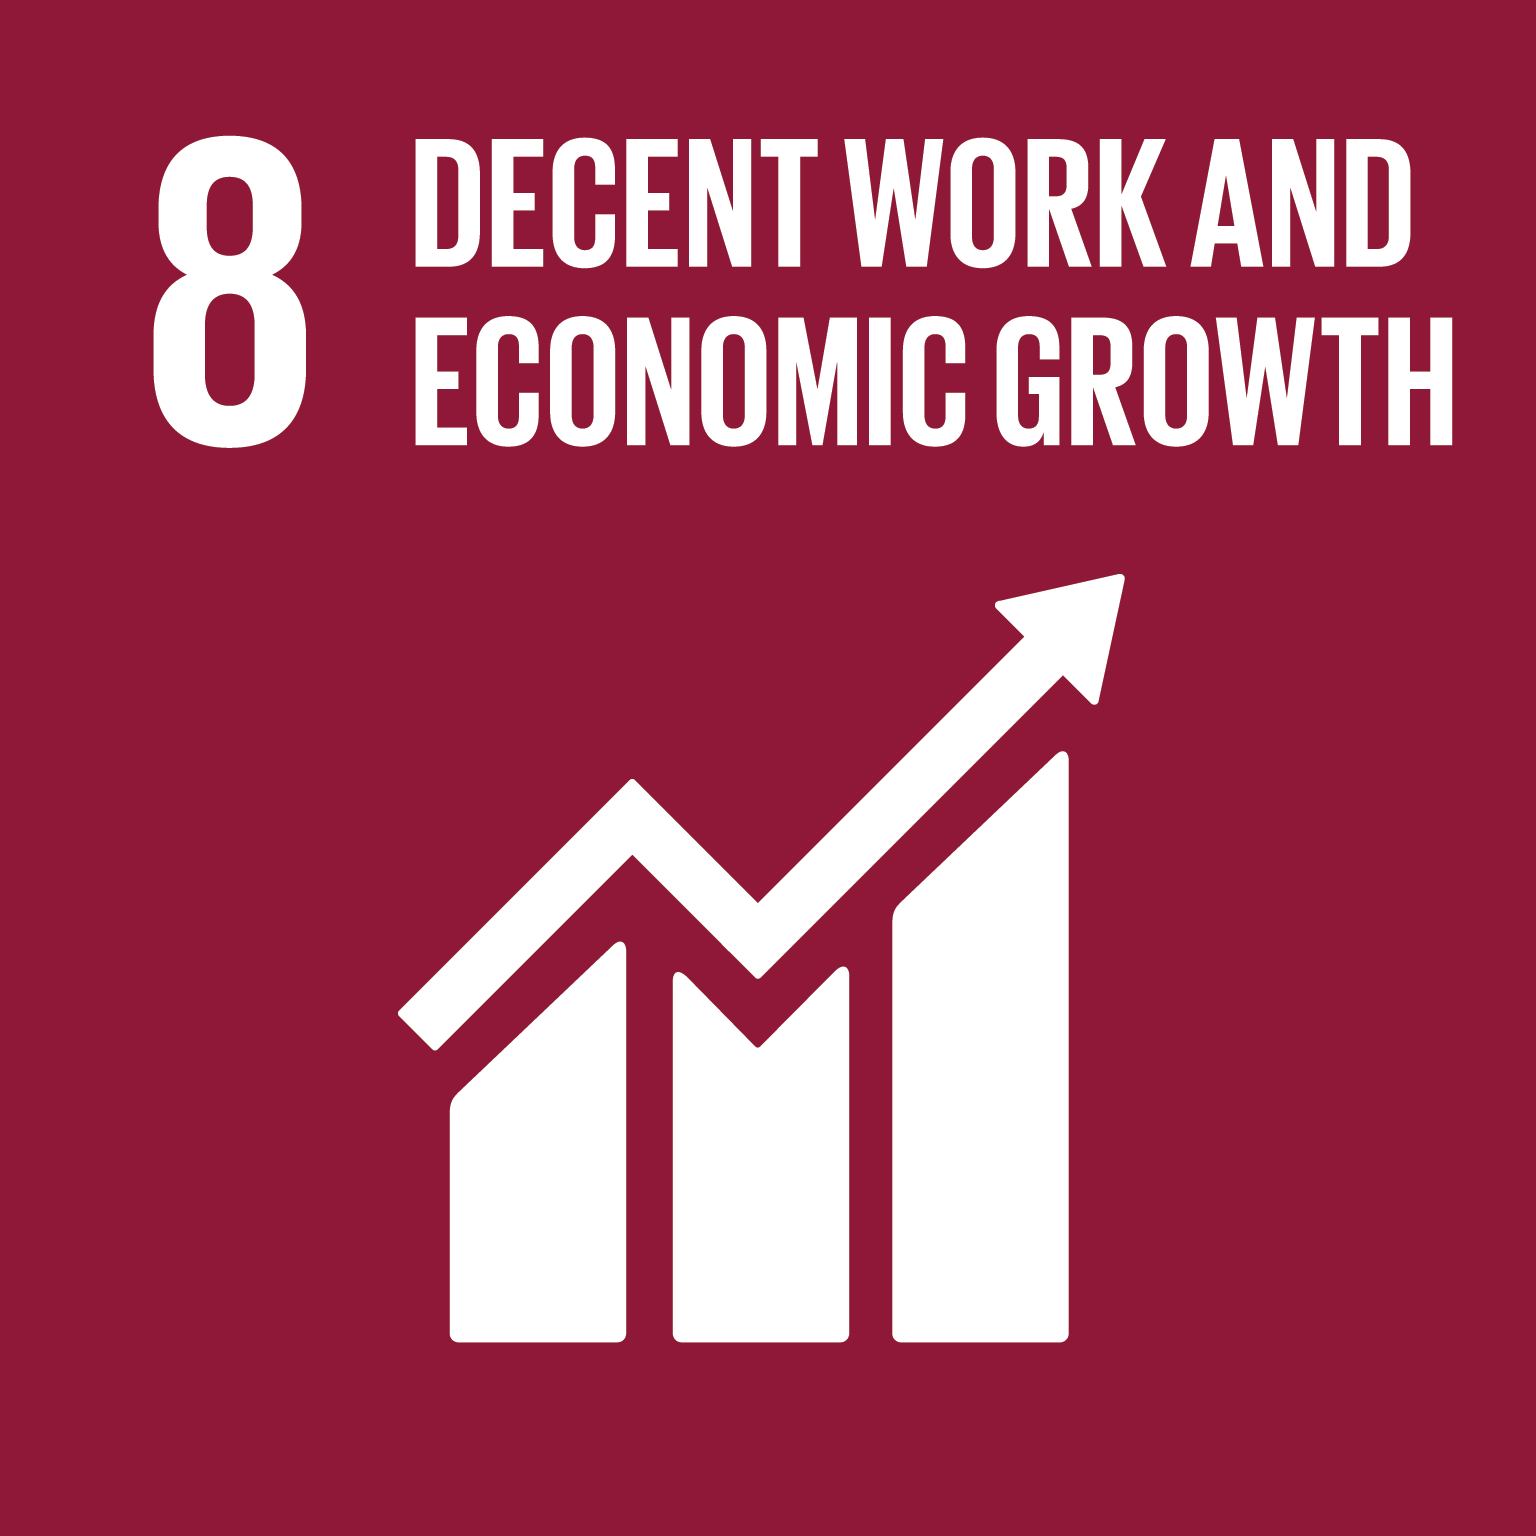 Decorative image for SDG 7